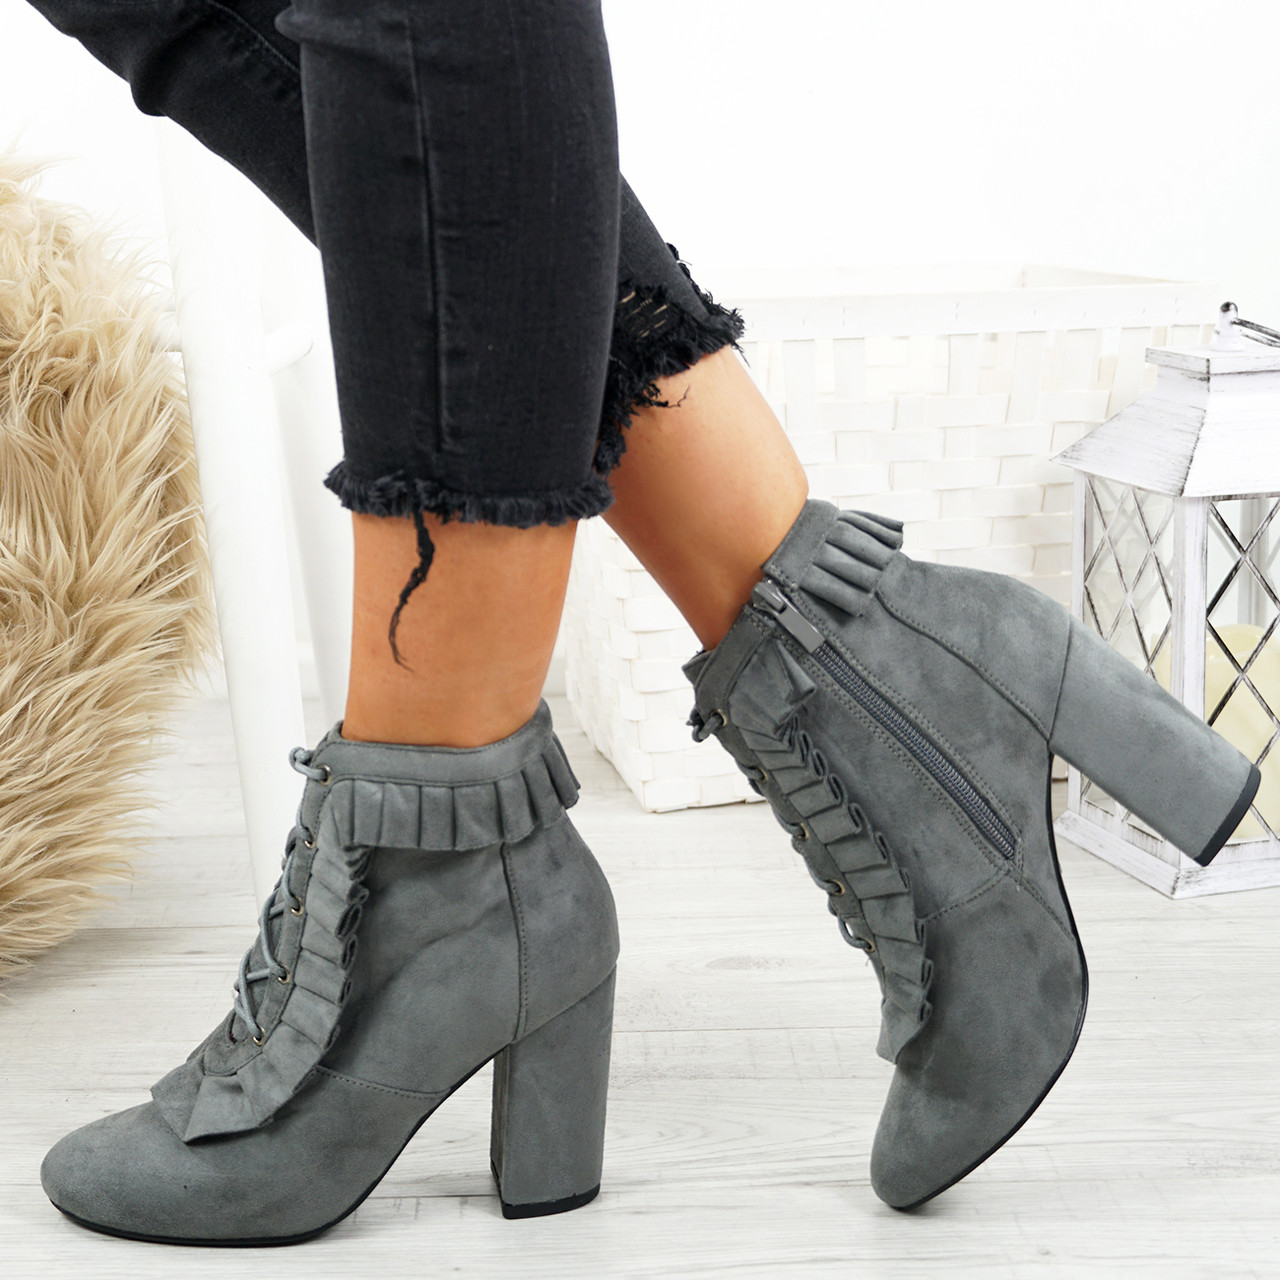 LADIES WOMENS RUFFLE ANKLE BOOTS SIDE ZIP HIGH MID STILETTO HEELS FASHION SHOES